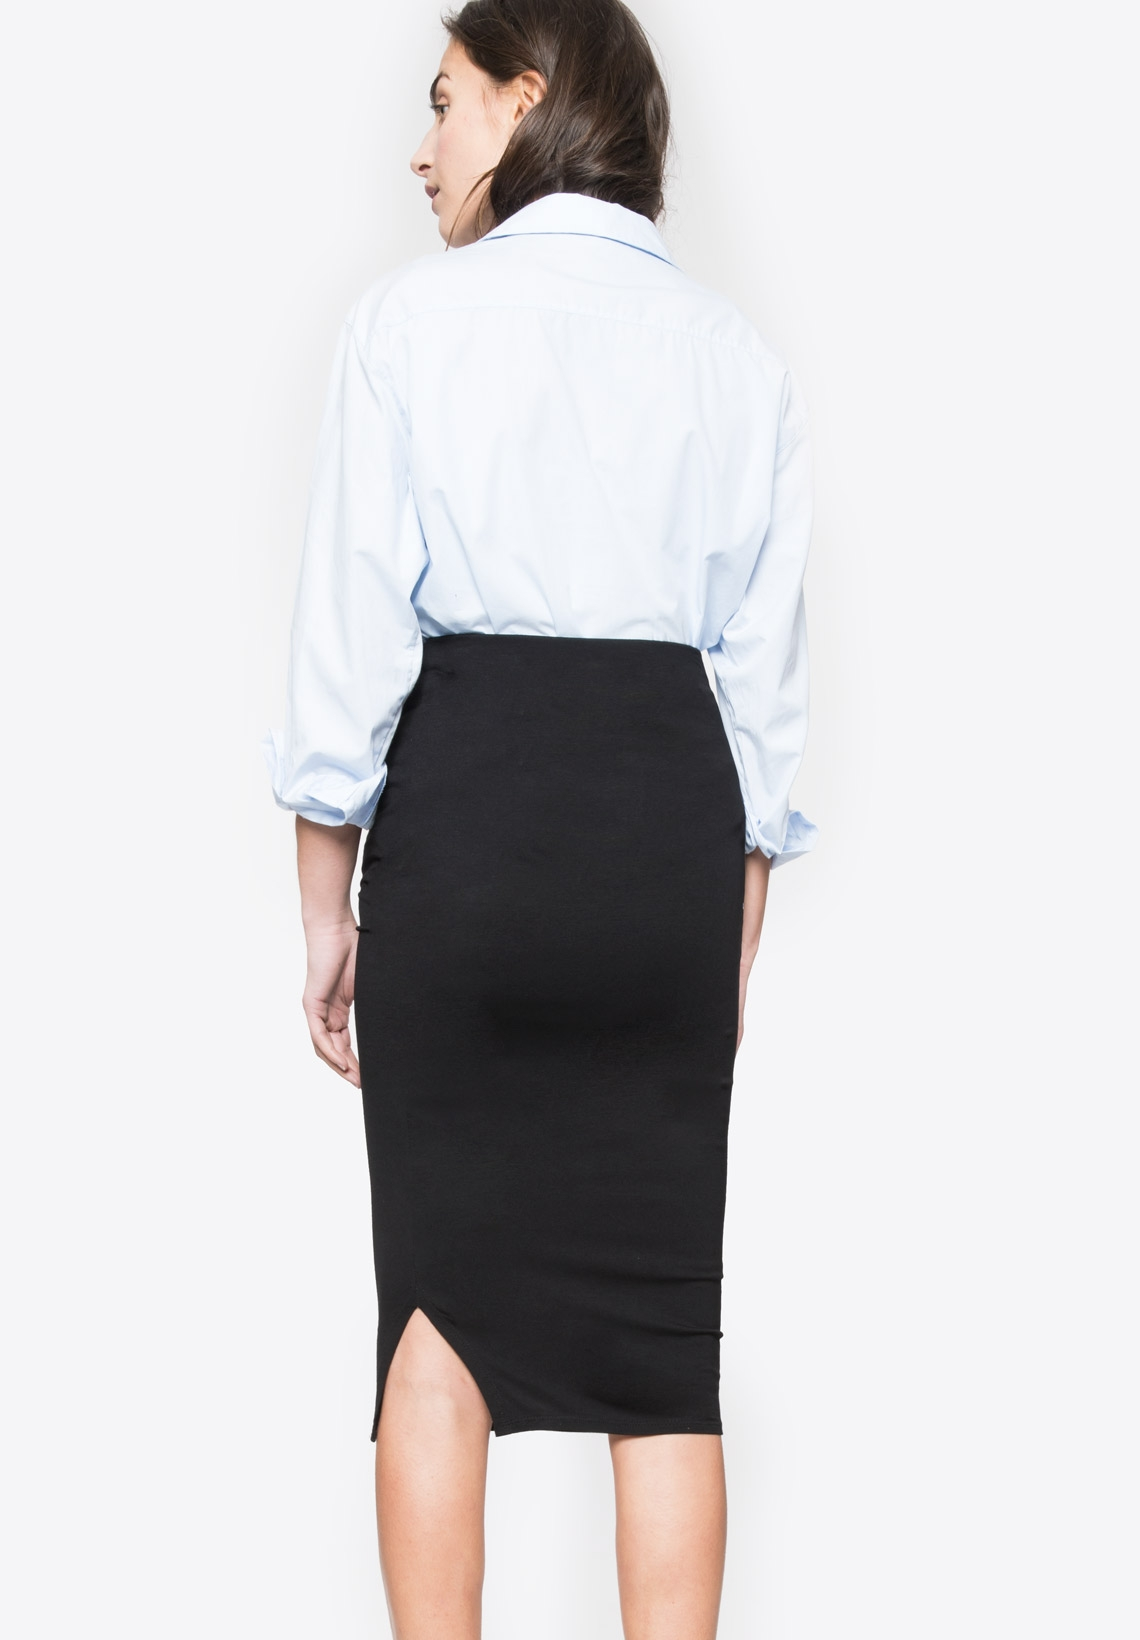 4678be07eb CINDY - Maternity skirt with over belly band - Envie de Fraise ...